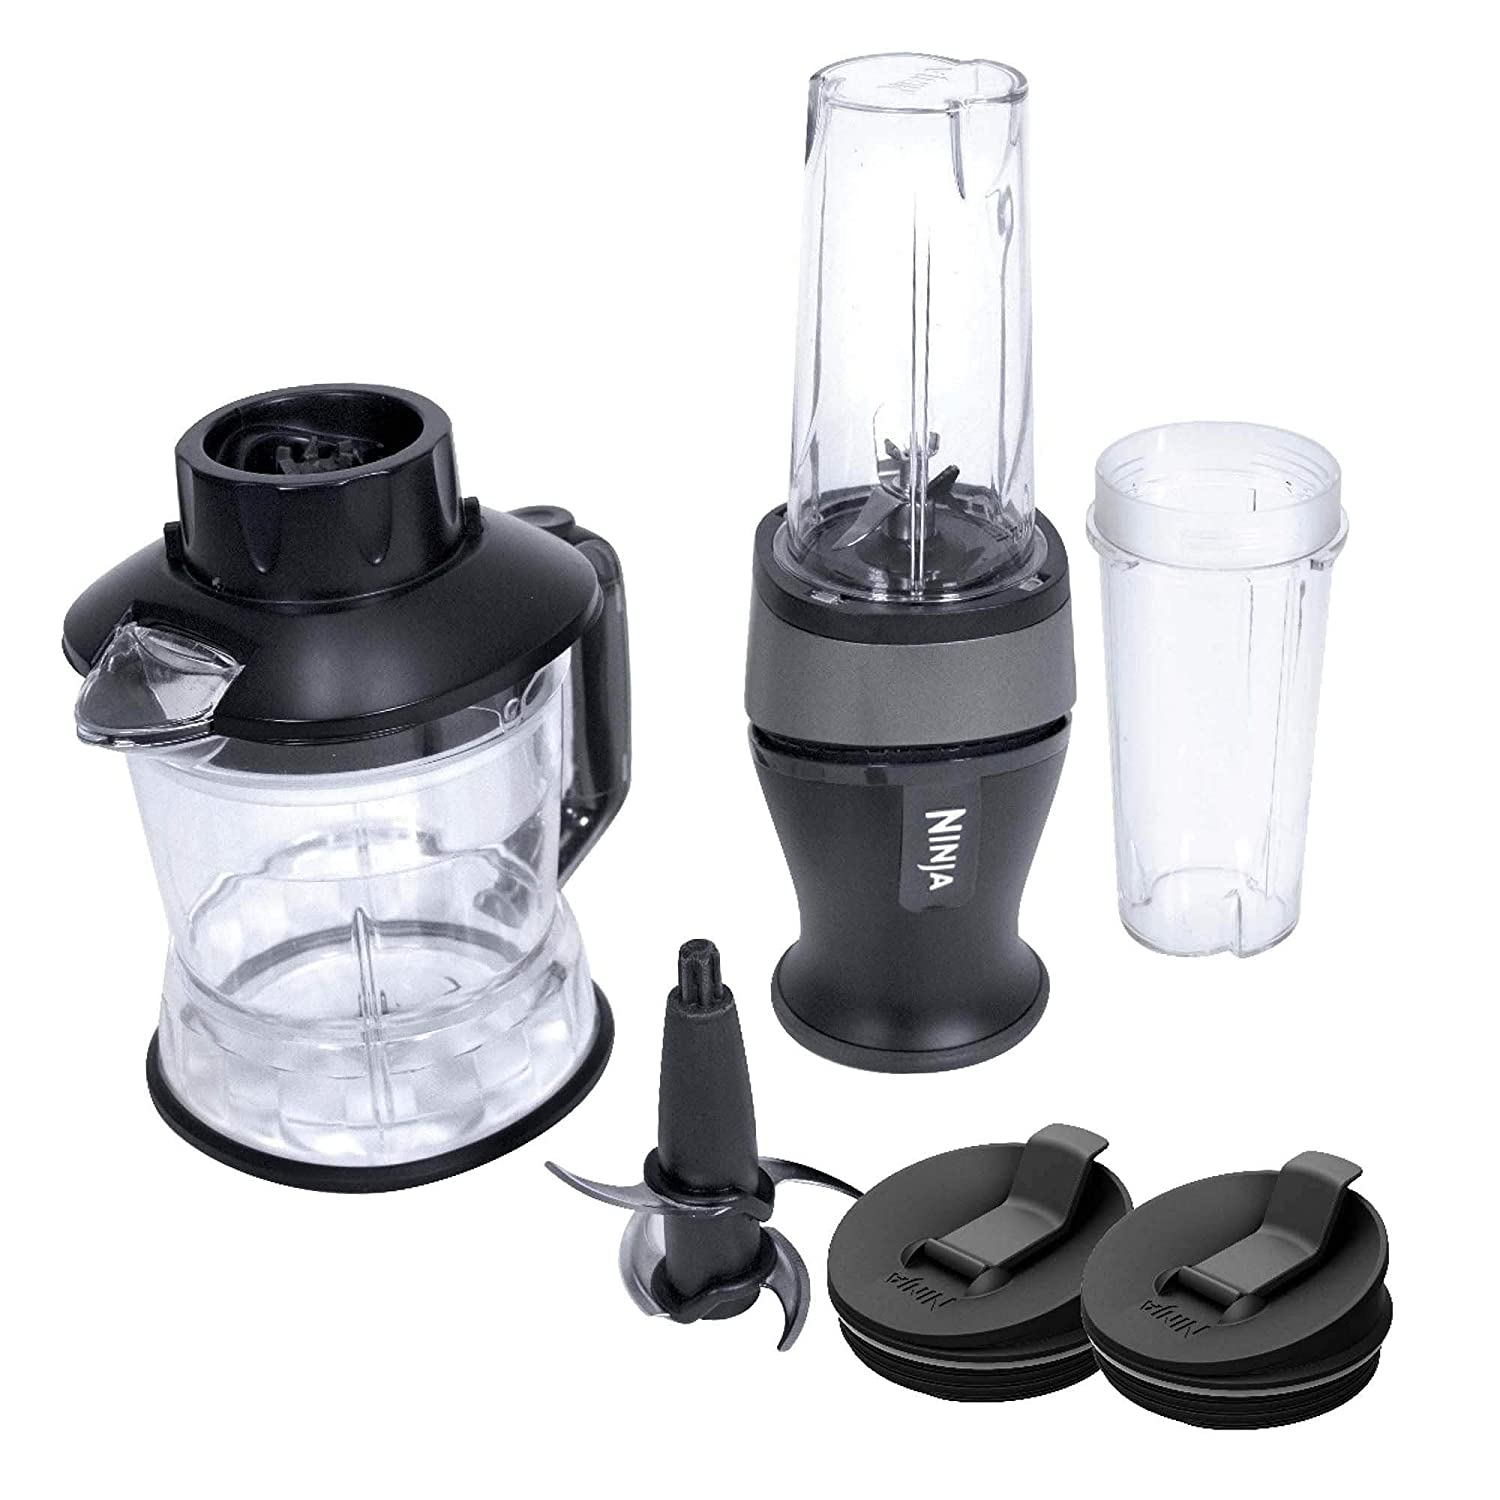 Nutri Ninja 2-in-1 700-Watt Blender/Processor | QB3005 (Renewed)